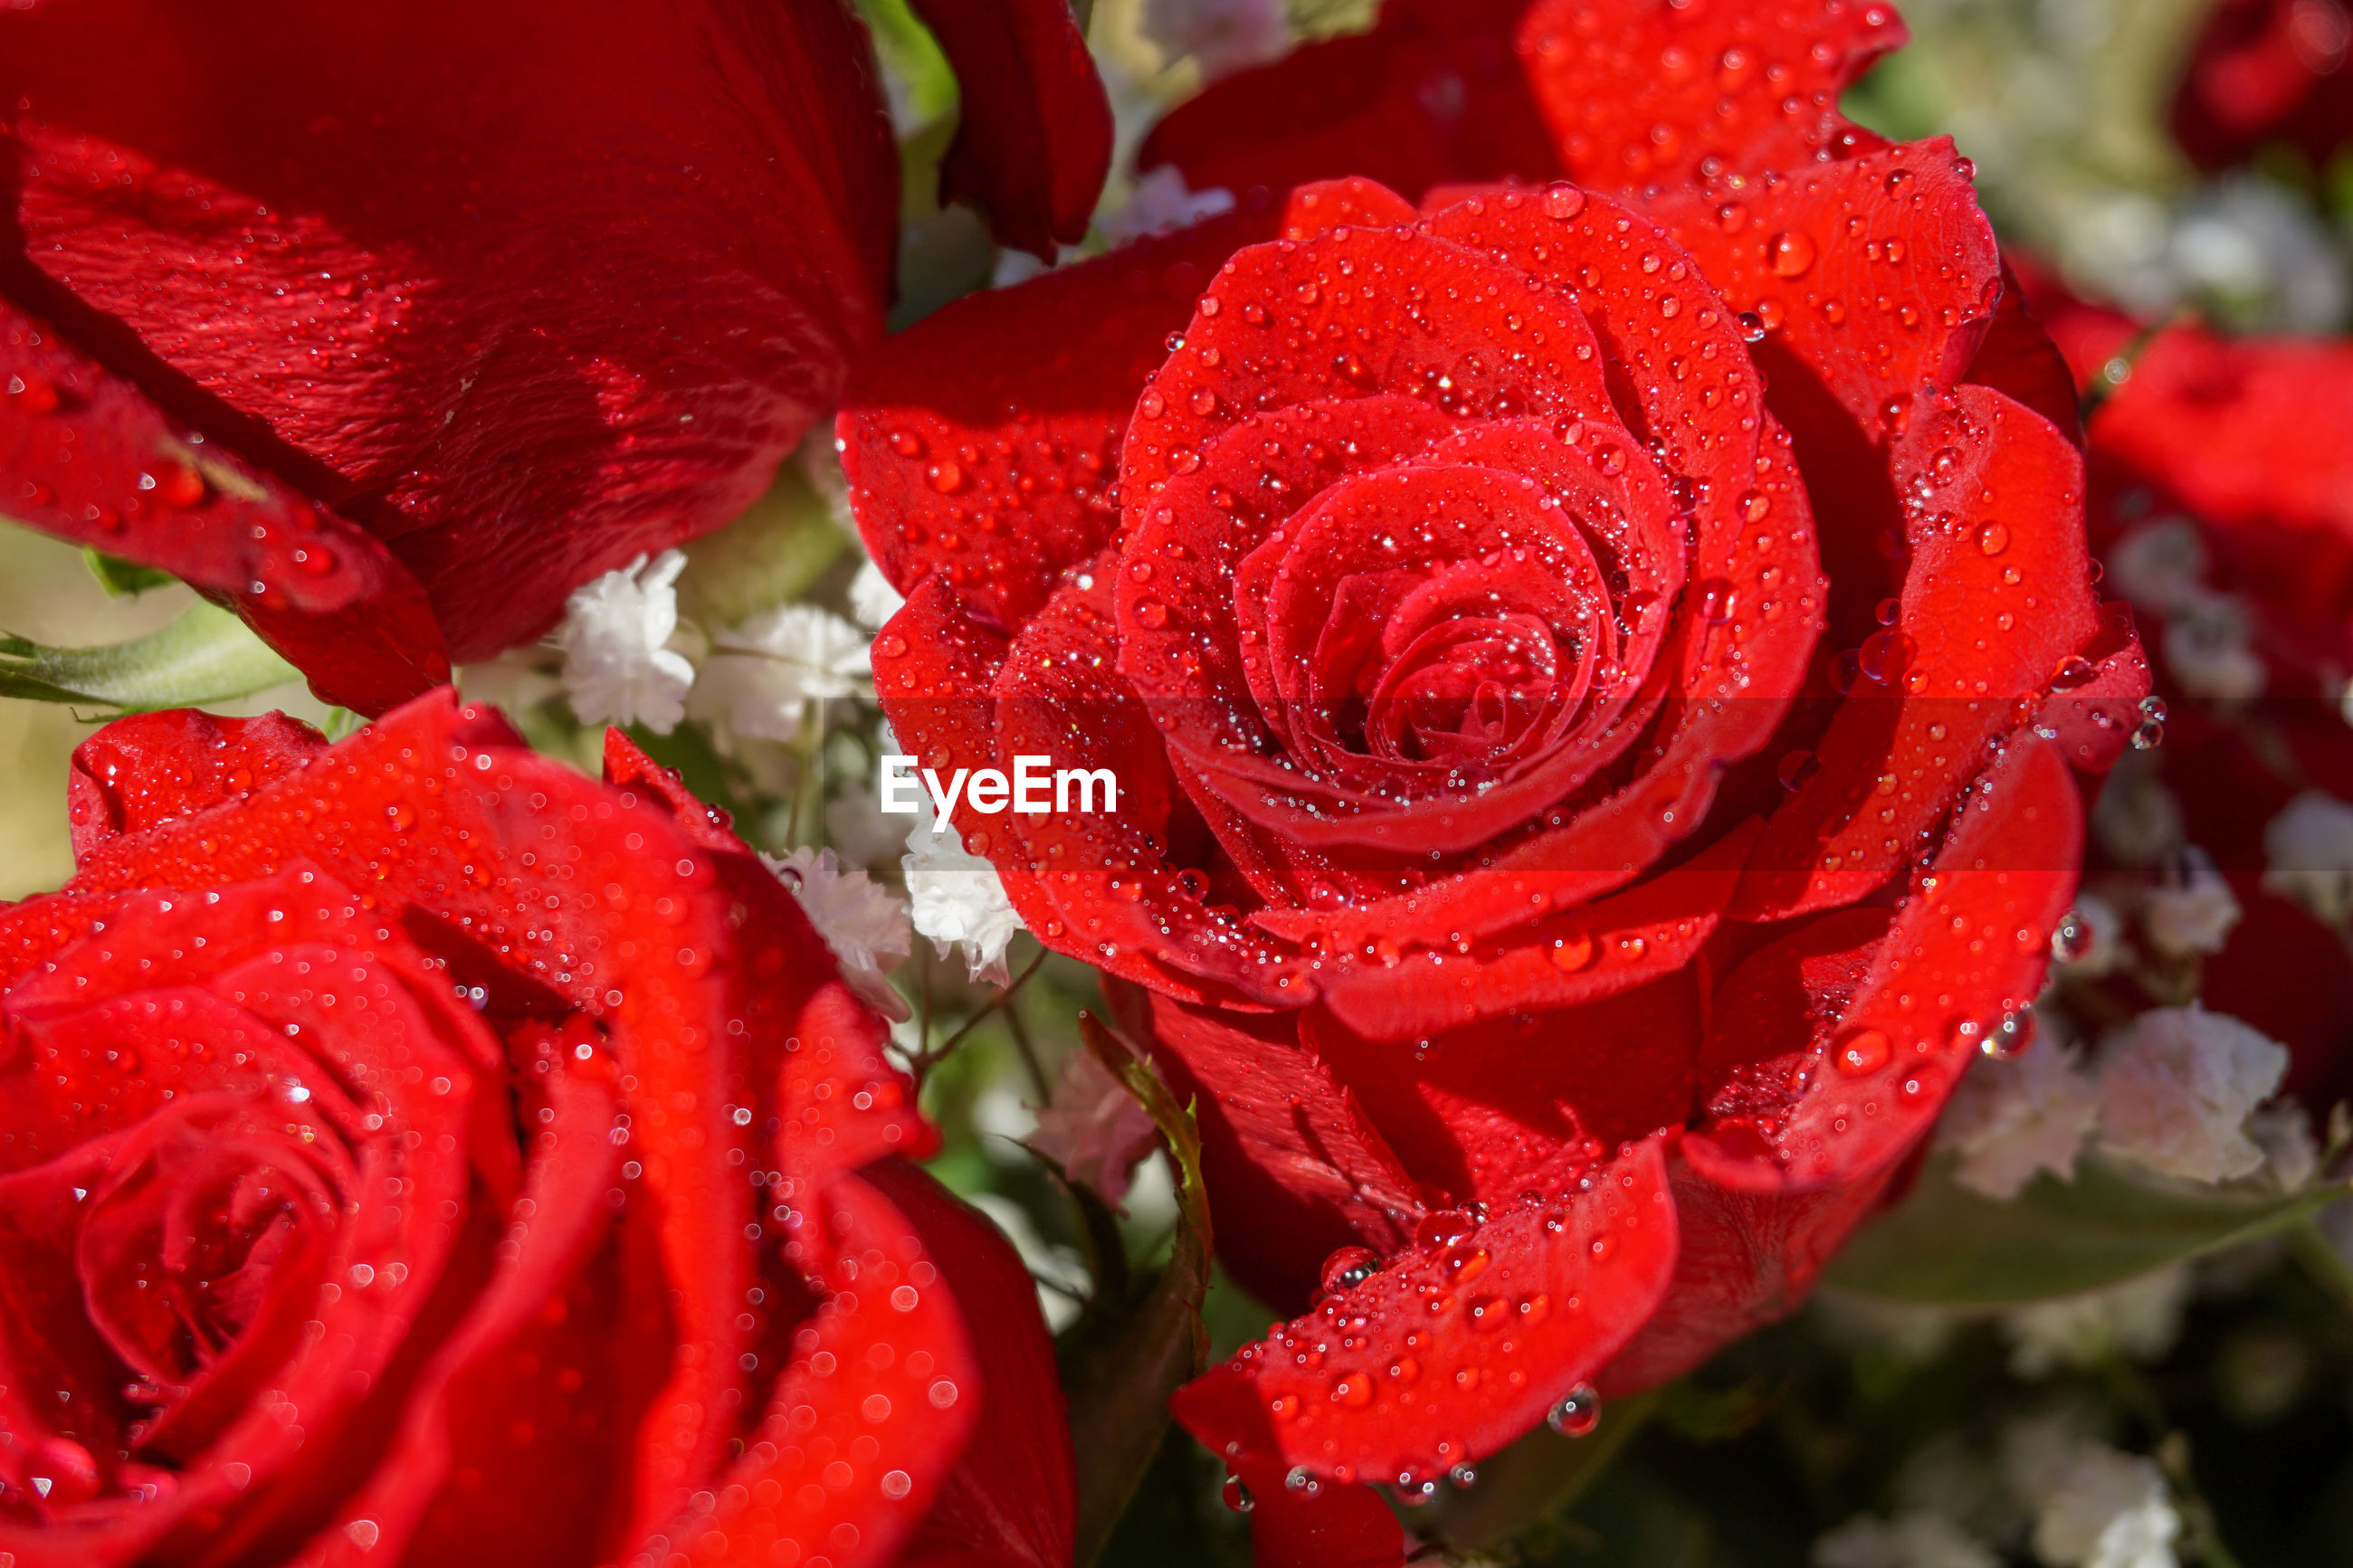 CLOSE-UP OF WET RED ROSE IN RAINY SEASON